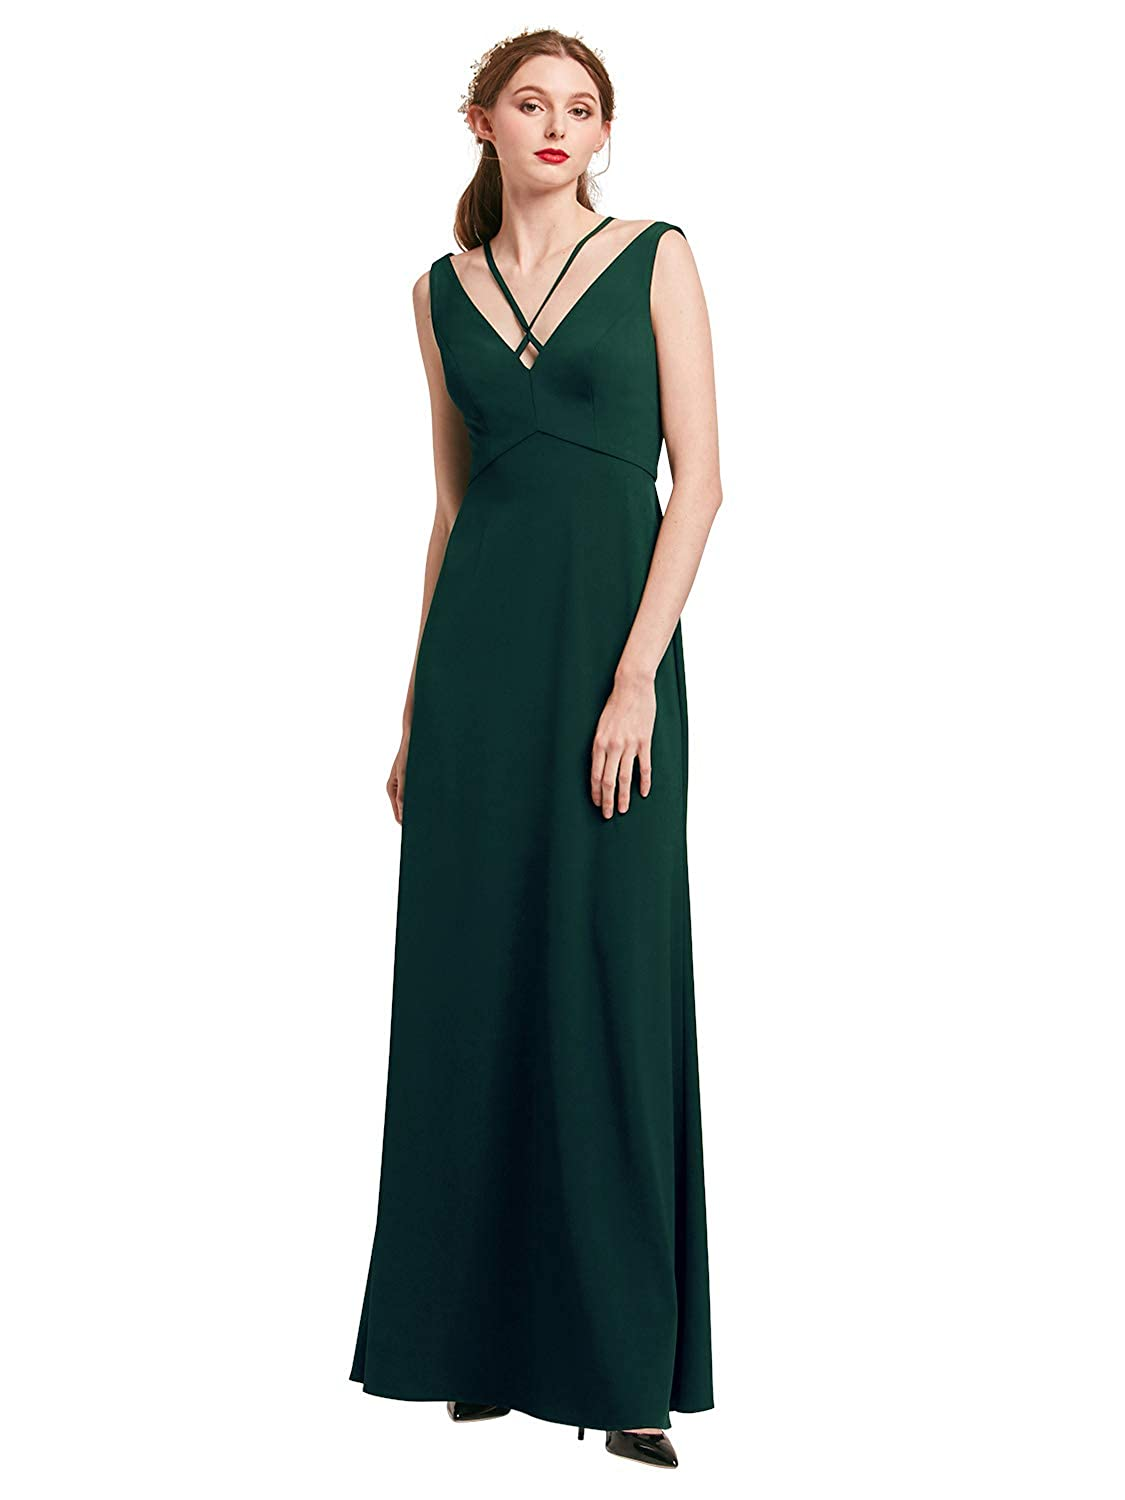 Dark Green Alicepub Women Evening Gowns Elegant Formal Dresses Long Prom Dress Sleeveless